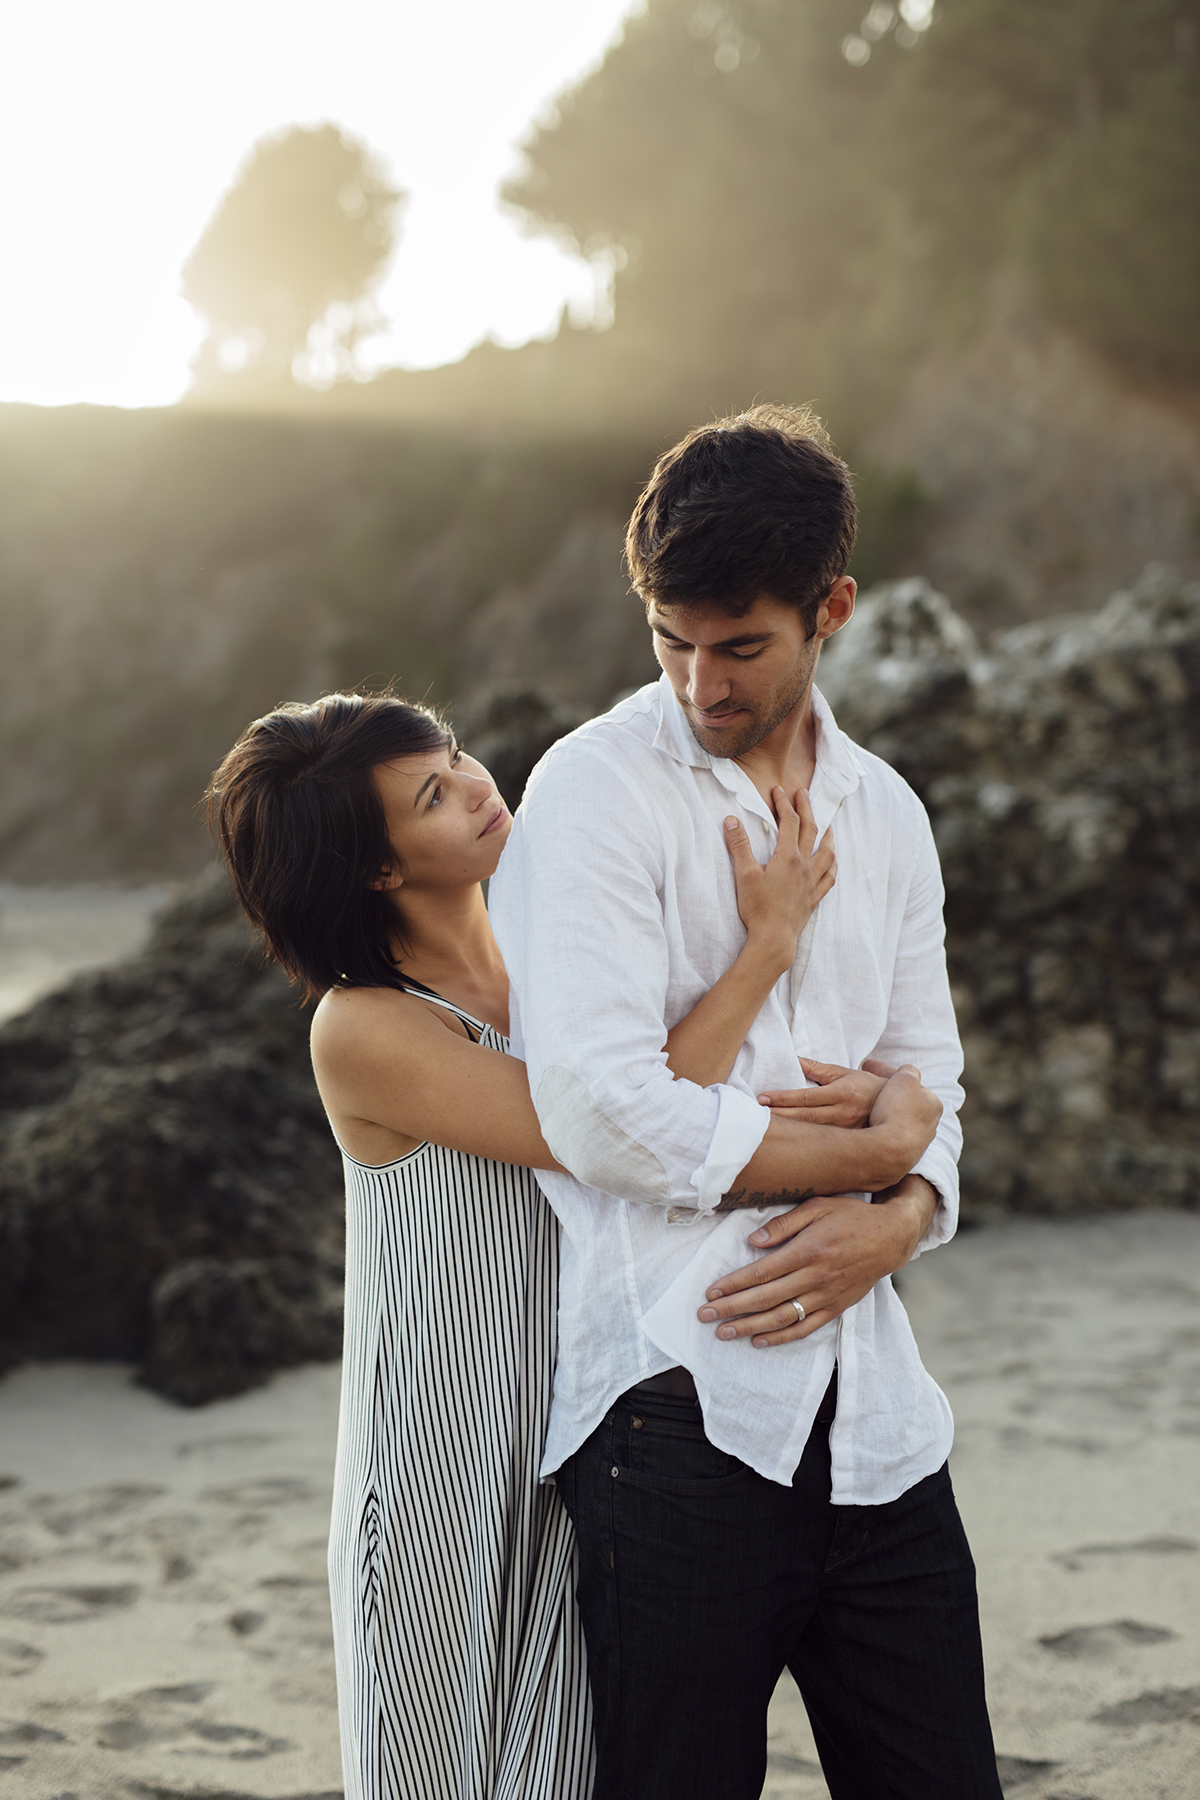 California-Engagement-Artsy-Artur-Zaitsev-Wedding-Photography-Studio-16